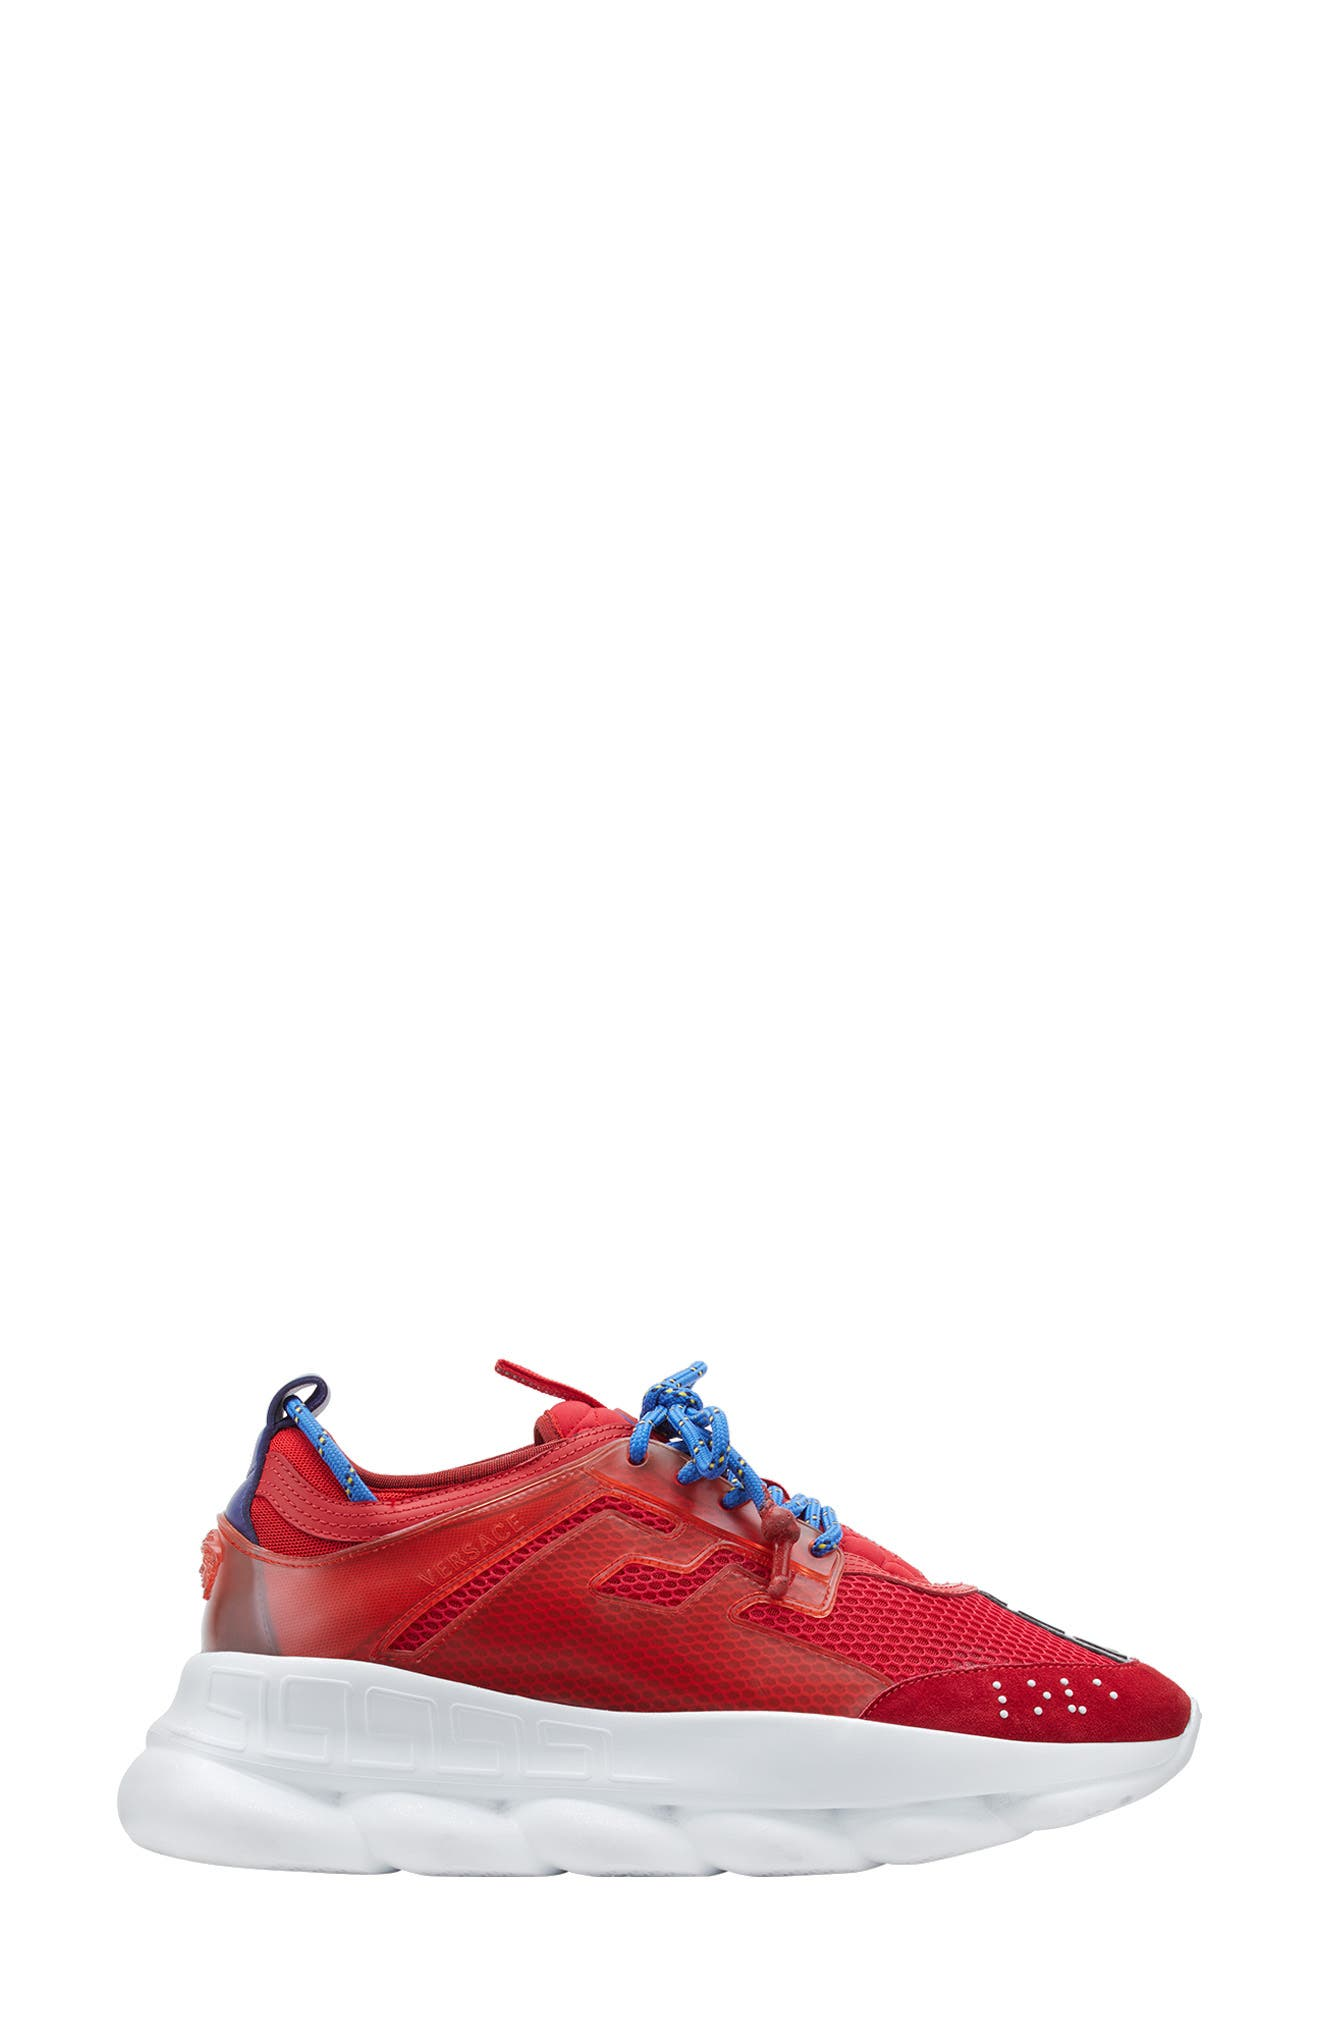 Versace Chain Reaction Sneaker,                             Alternate thumbnail 2, color,                             RED